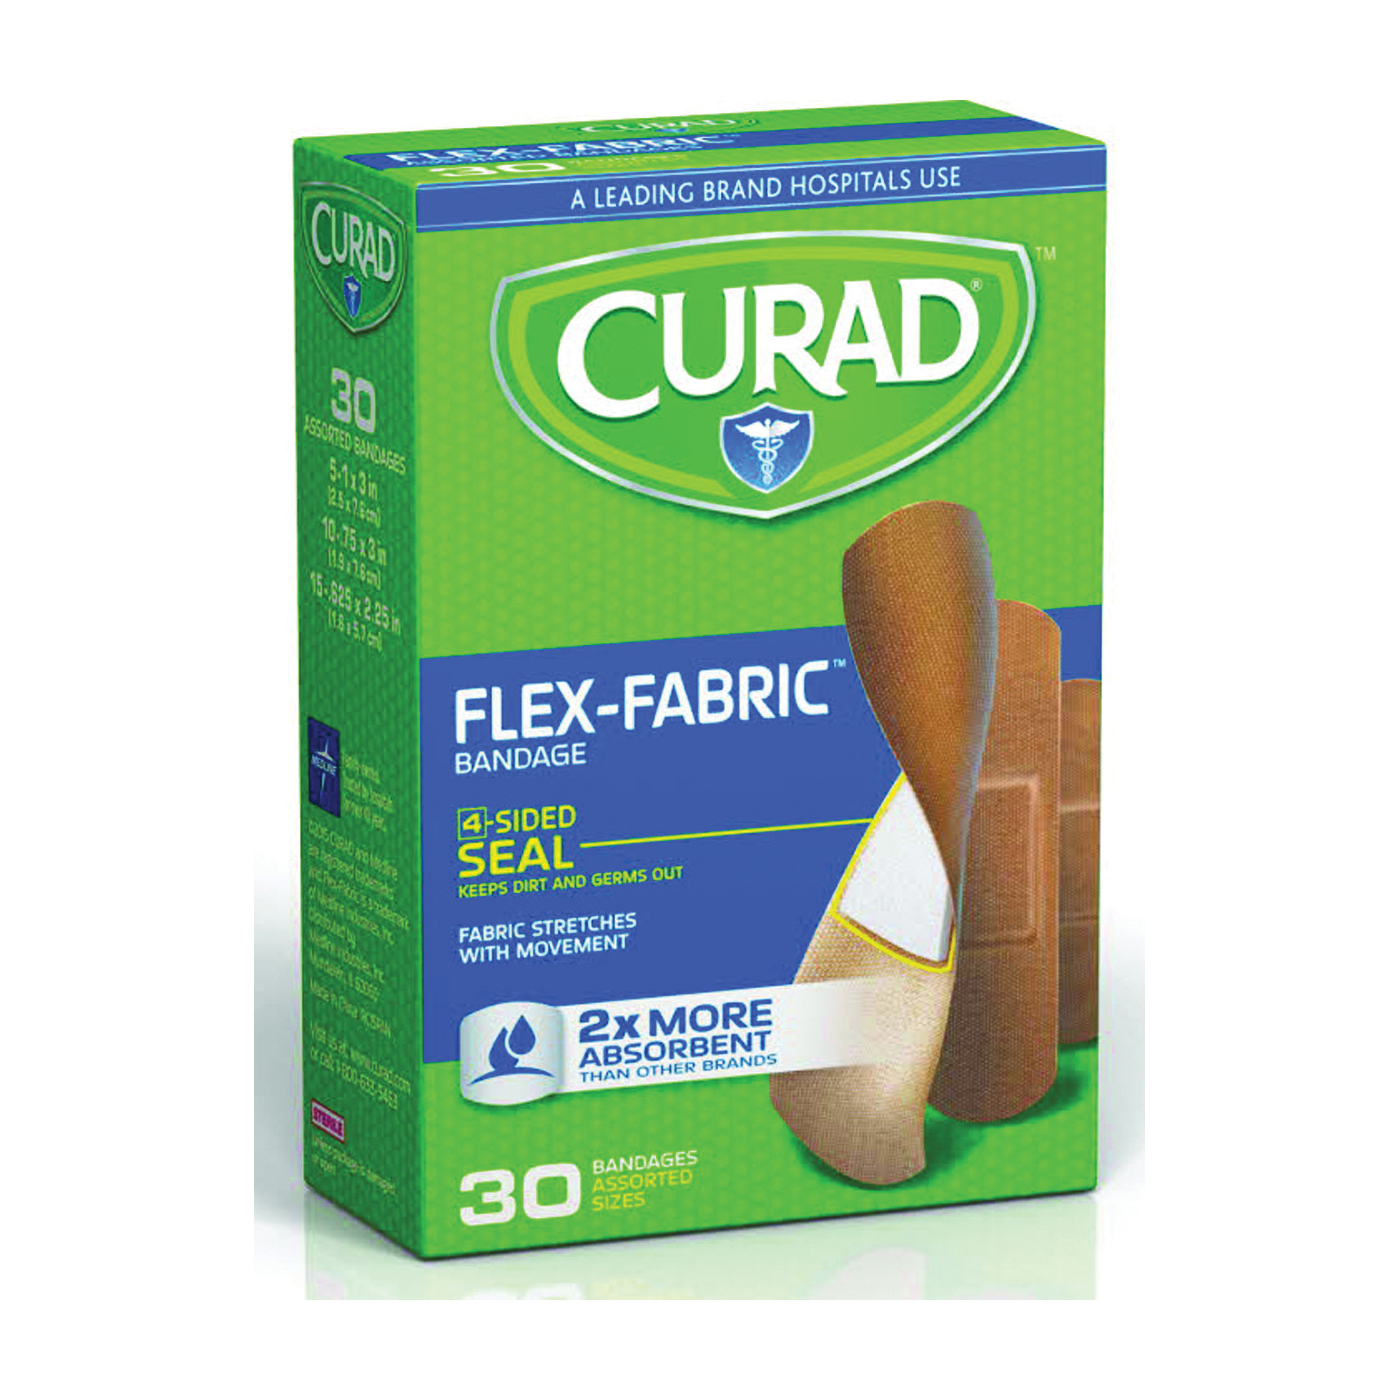 Picture of CURAD Flex-Fabric CUR47314RB Adhesive Bandage, Fabric Bandage, 24, Case